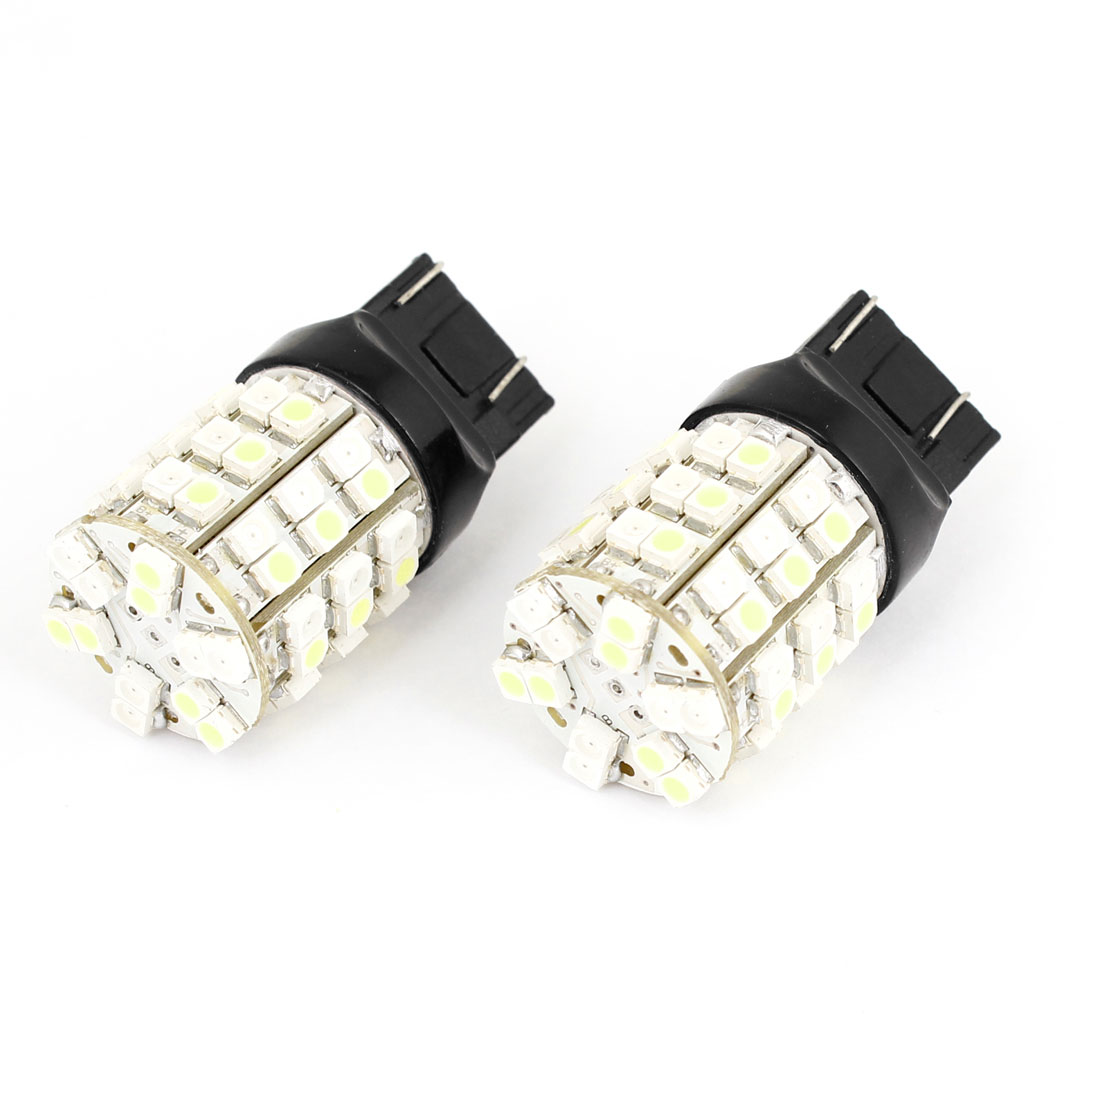 2 Pcs 7443 White Yellow 60 LED 1210 SMD Brake Back up Lamp Bulb for Car